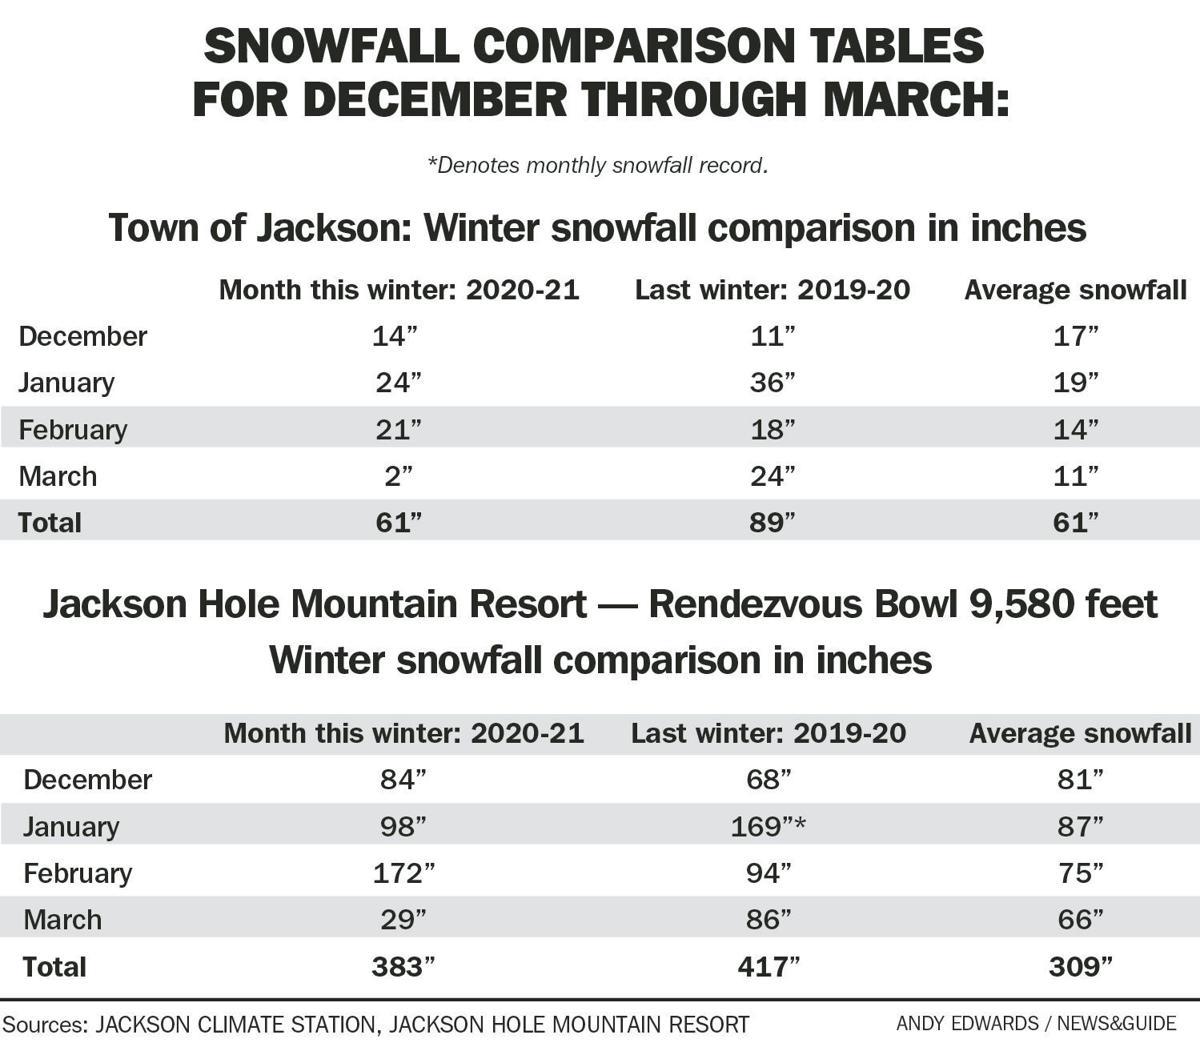 Snowfall comparison tables for December through March